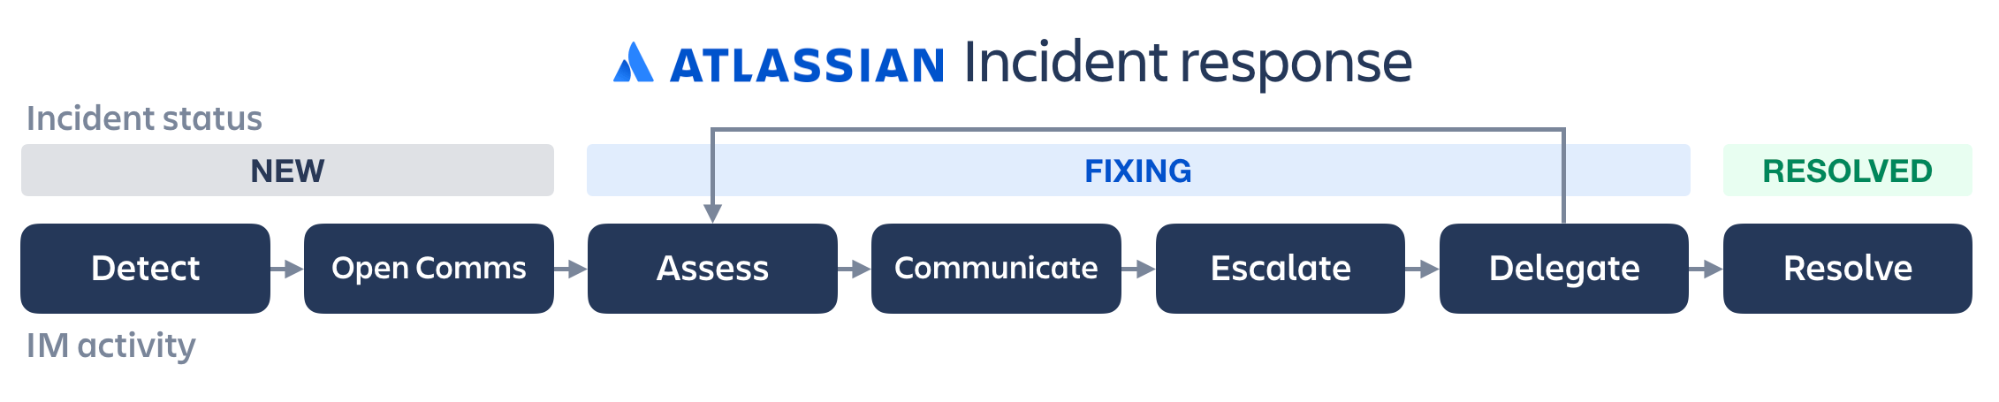 Incident response illustration : detect, open comms, assess, communicate, escalate, delegate, resolve